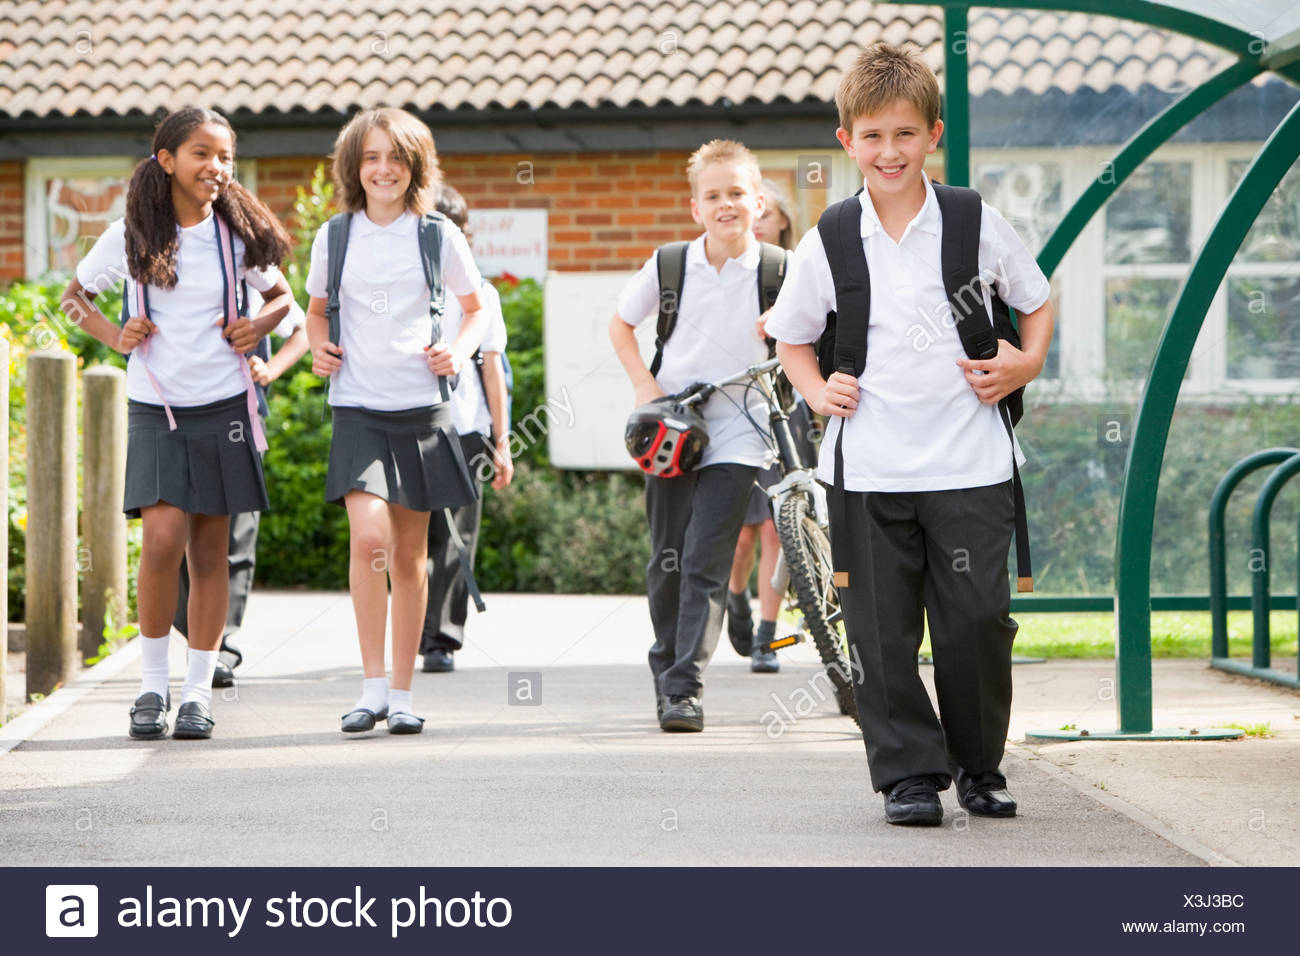 Students leaving school one with a bicycle Stock Photo